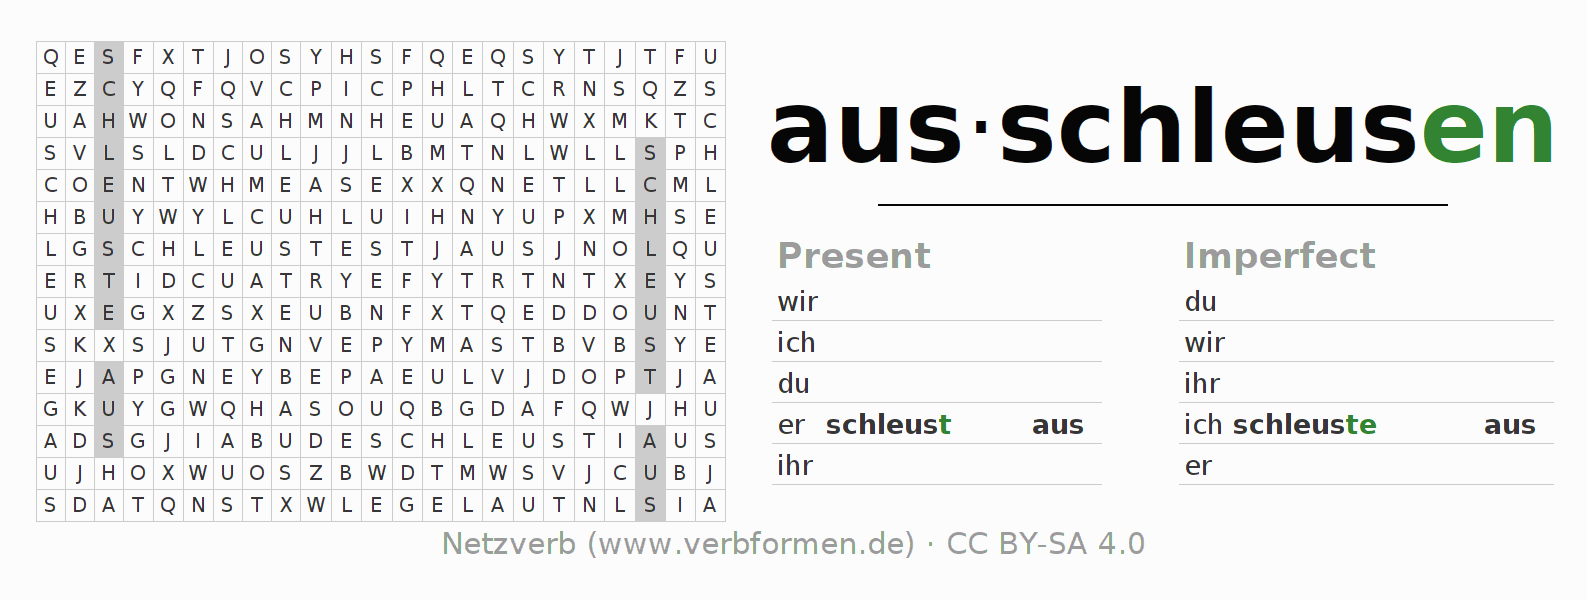 Word search puzzle for the conjugation of the verb ausschleusen (hat)